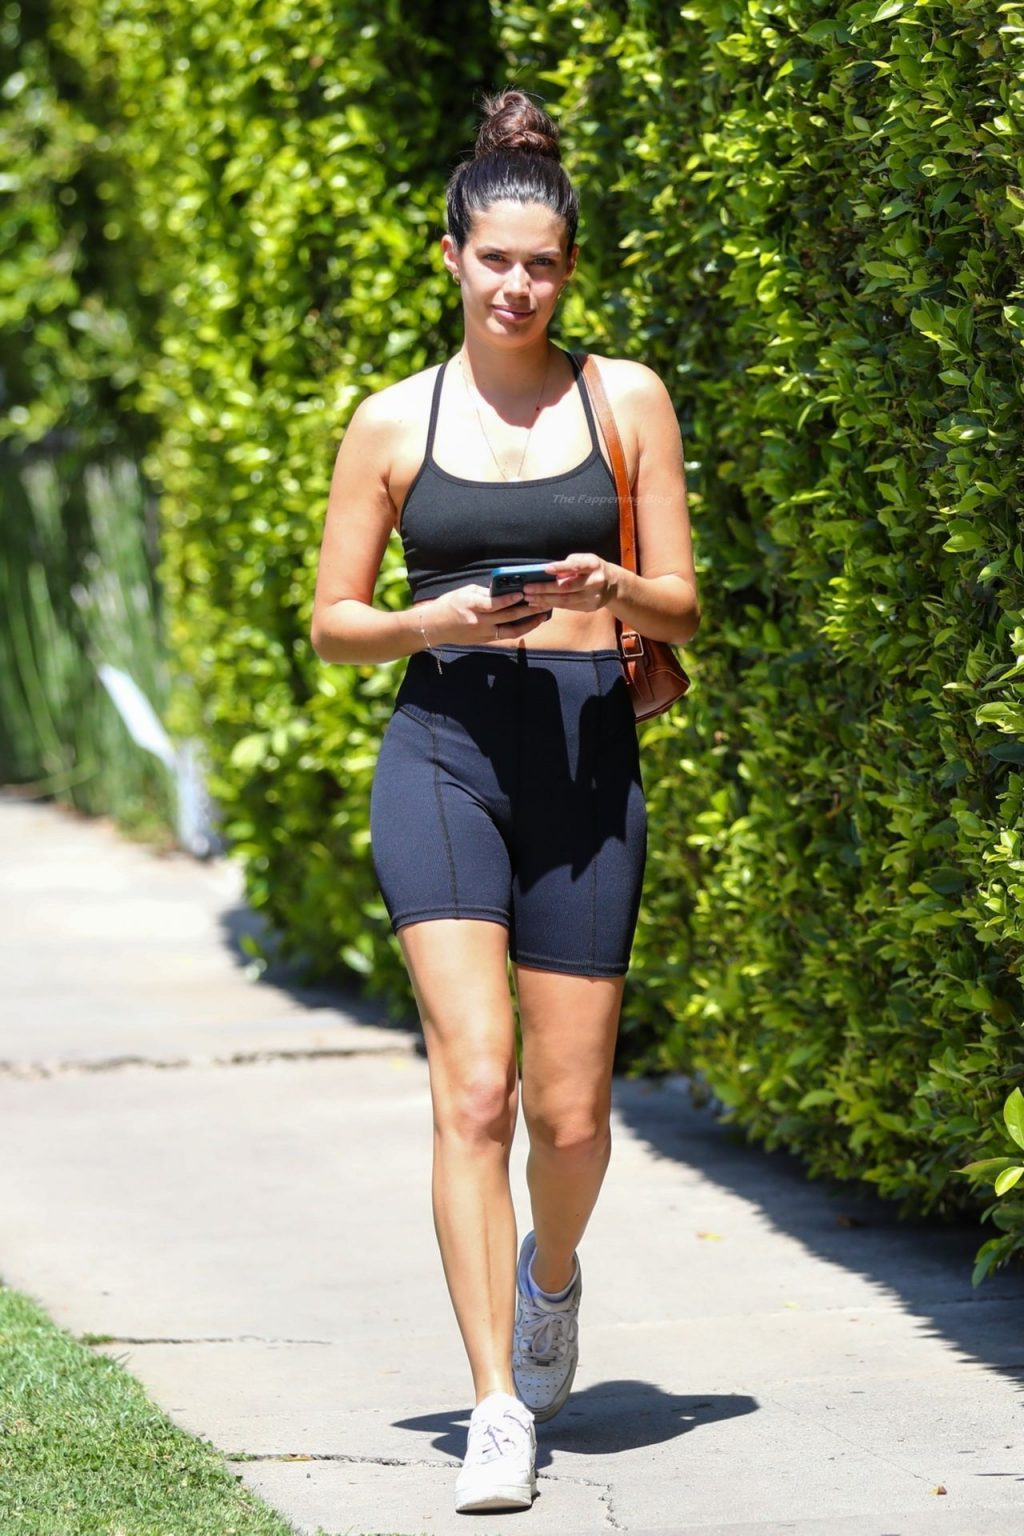 Sara Sampaio is Pictured Leaving a Grueling Pilates Workout in LA (15 Photos)